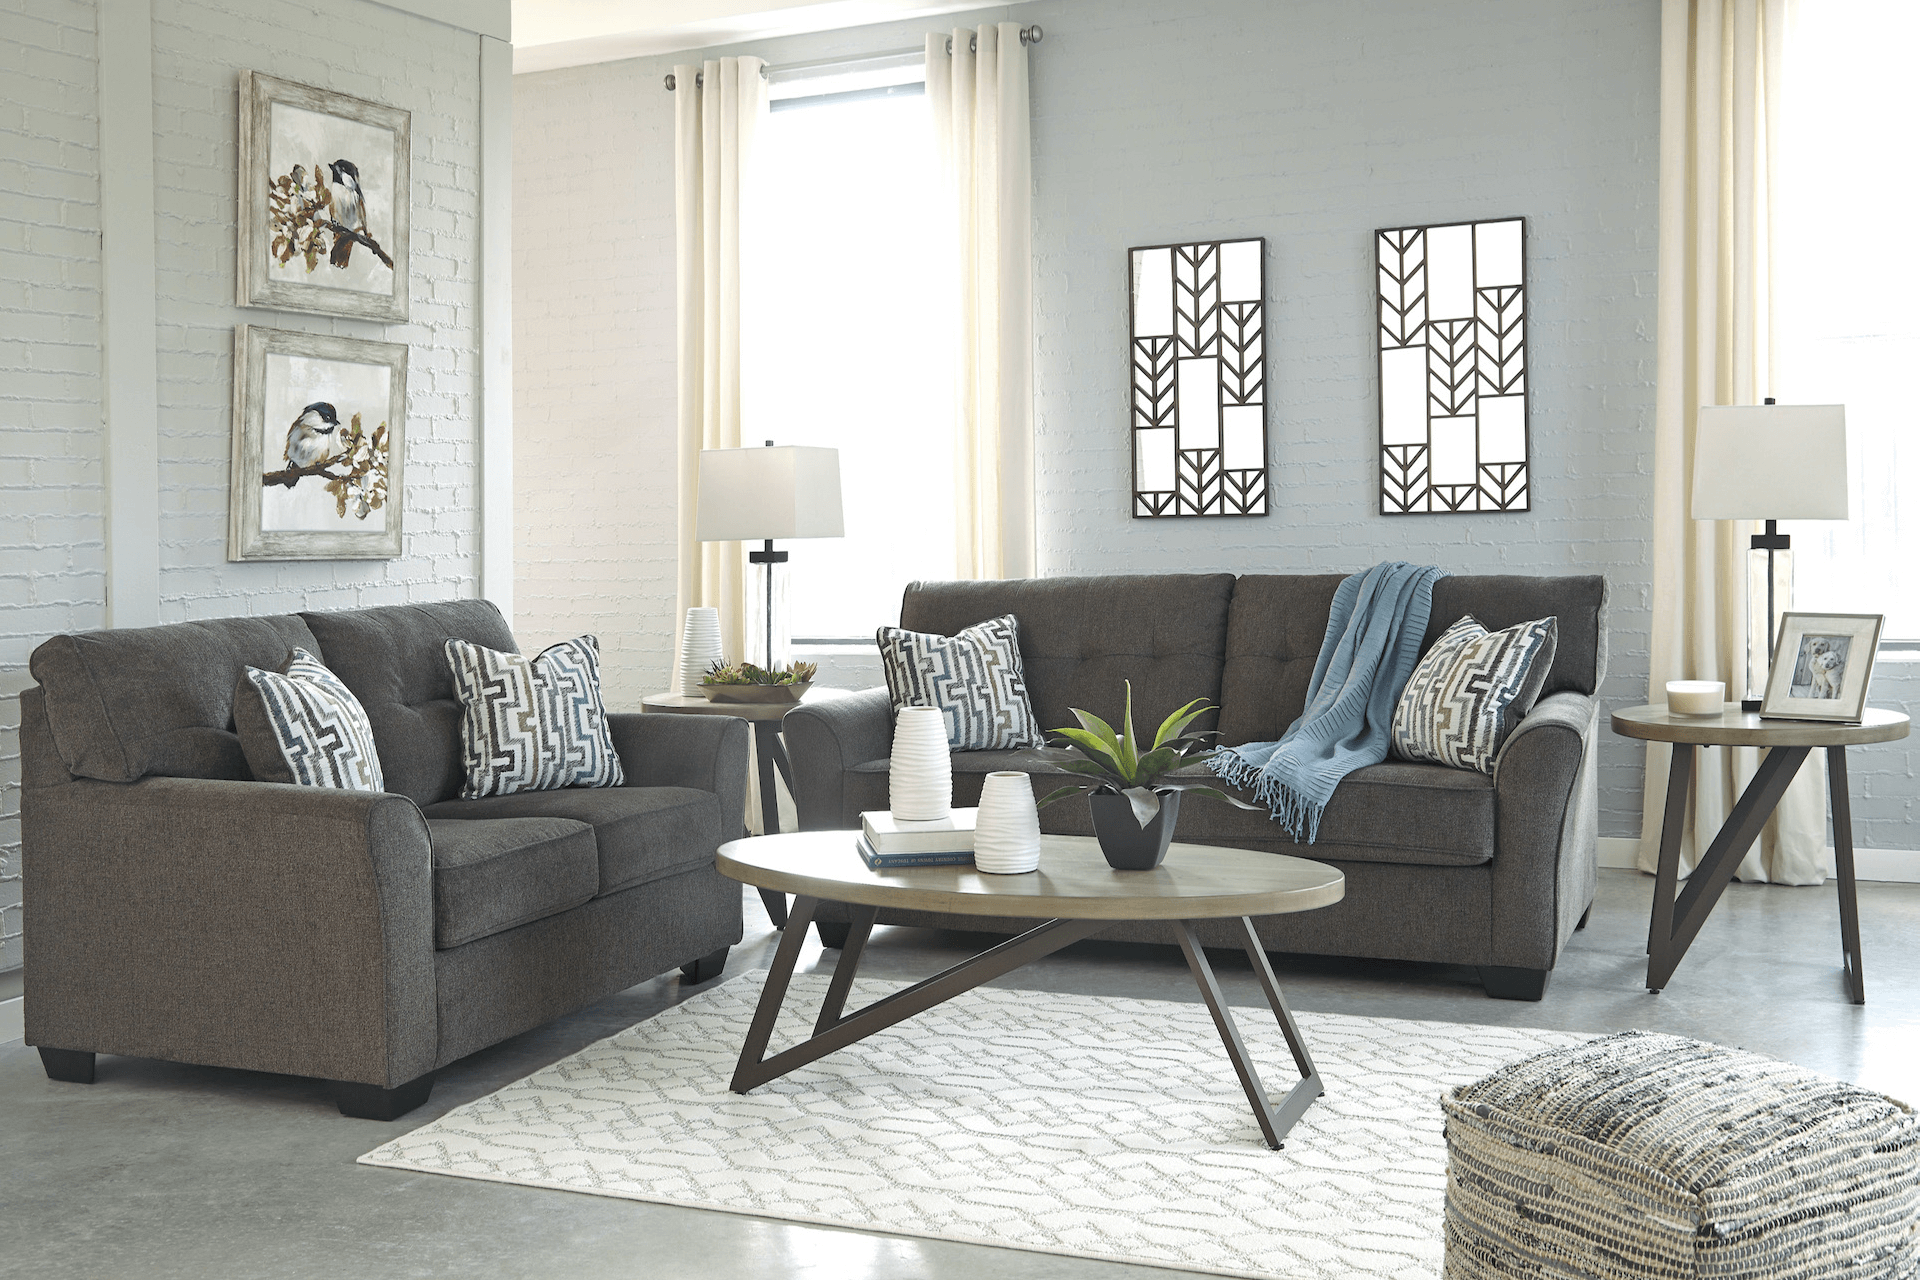 Atlantic_Furniture-Sofa_Sets-73901_T298_hi-res